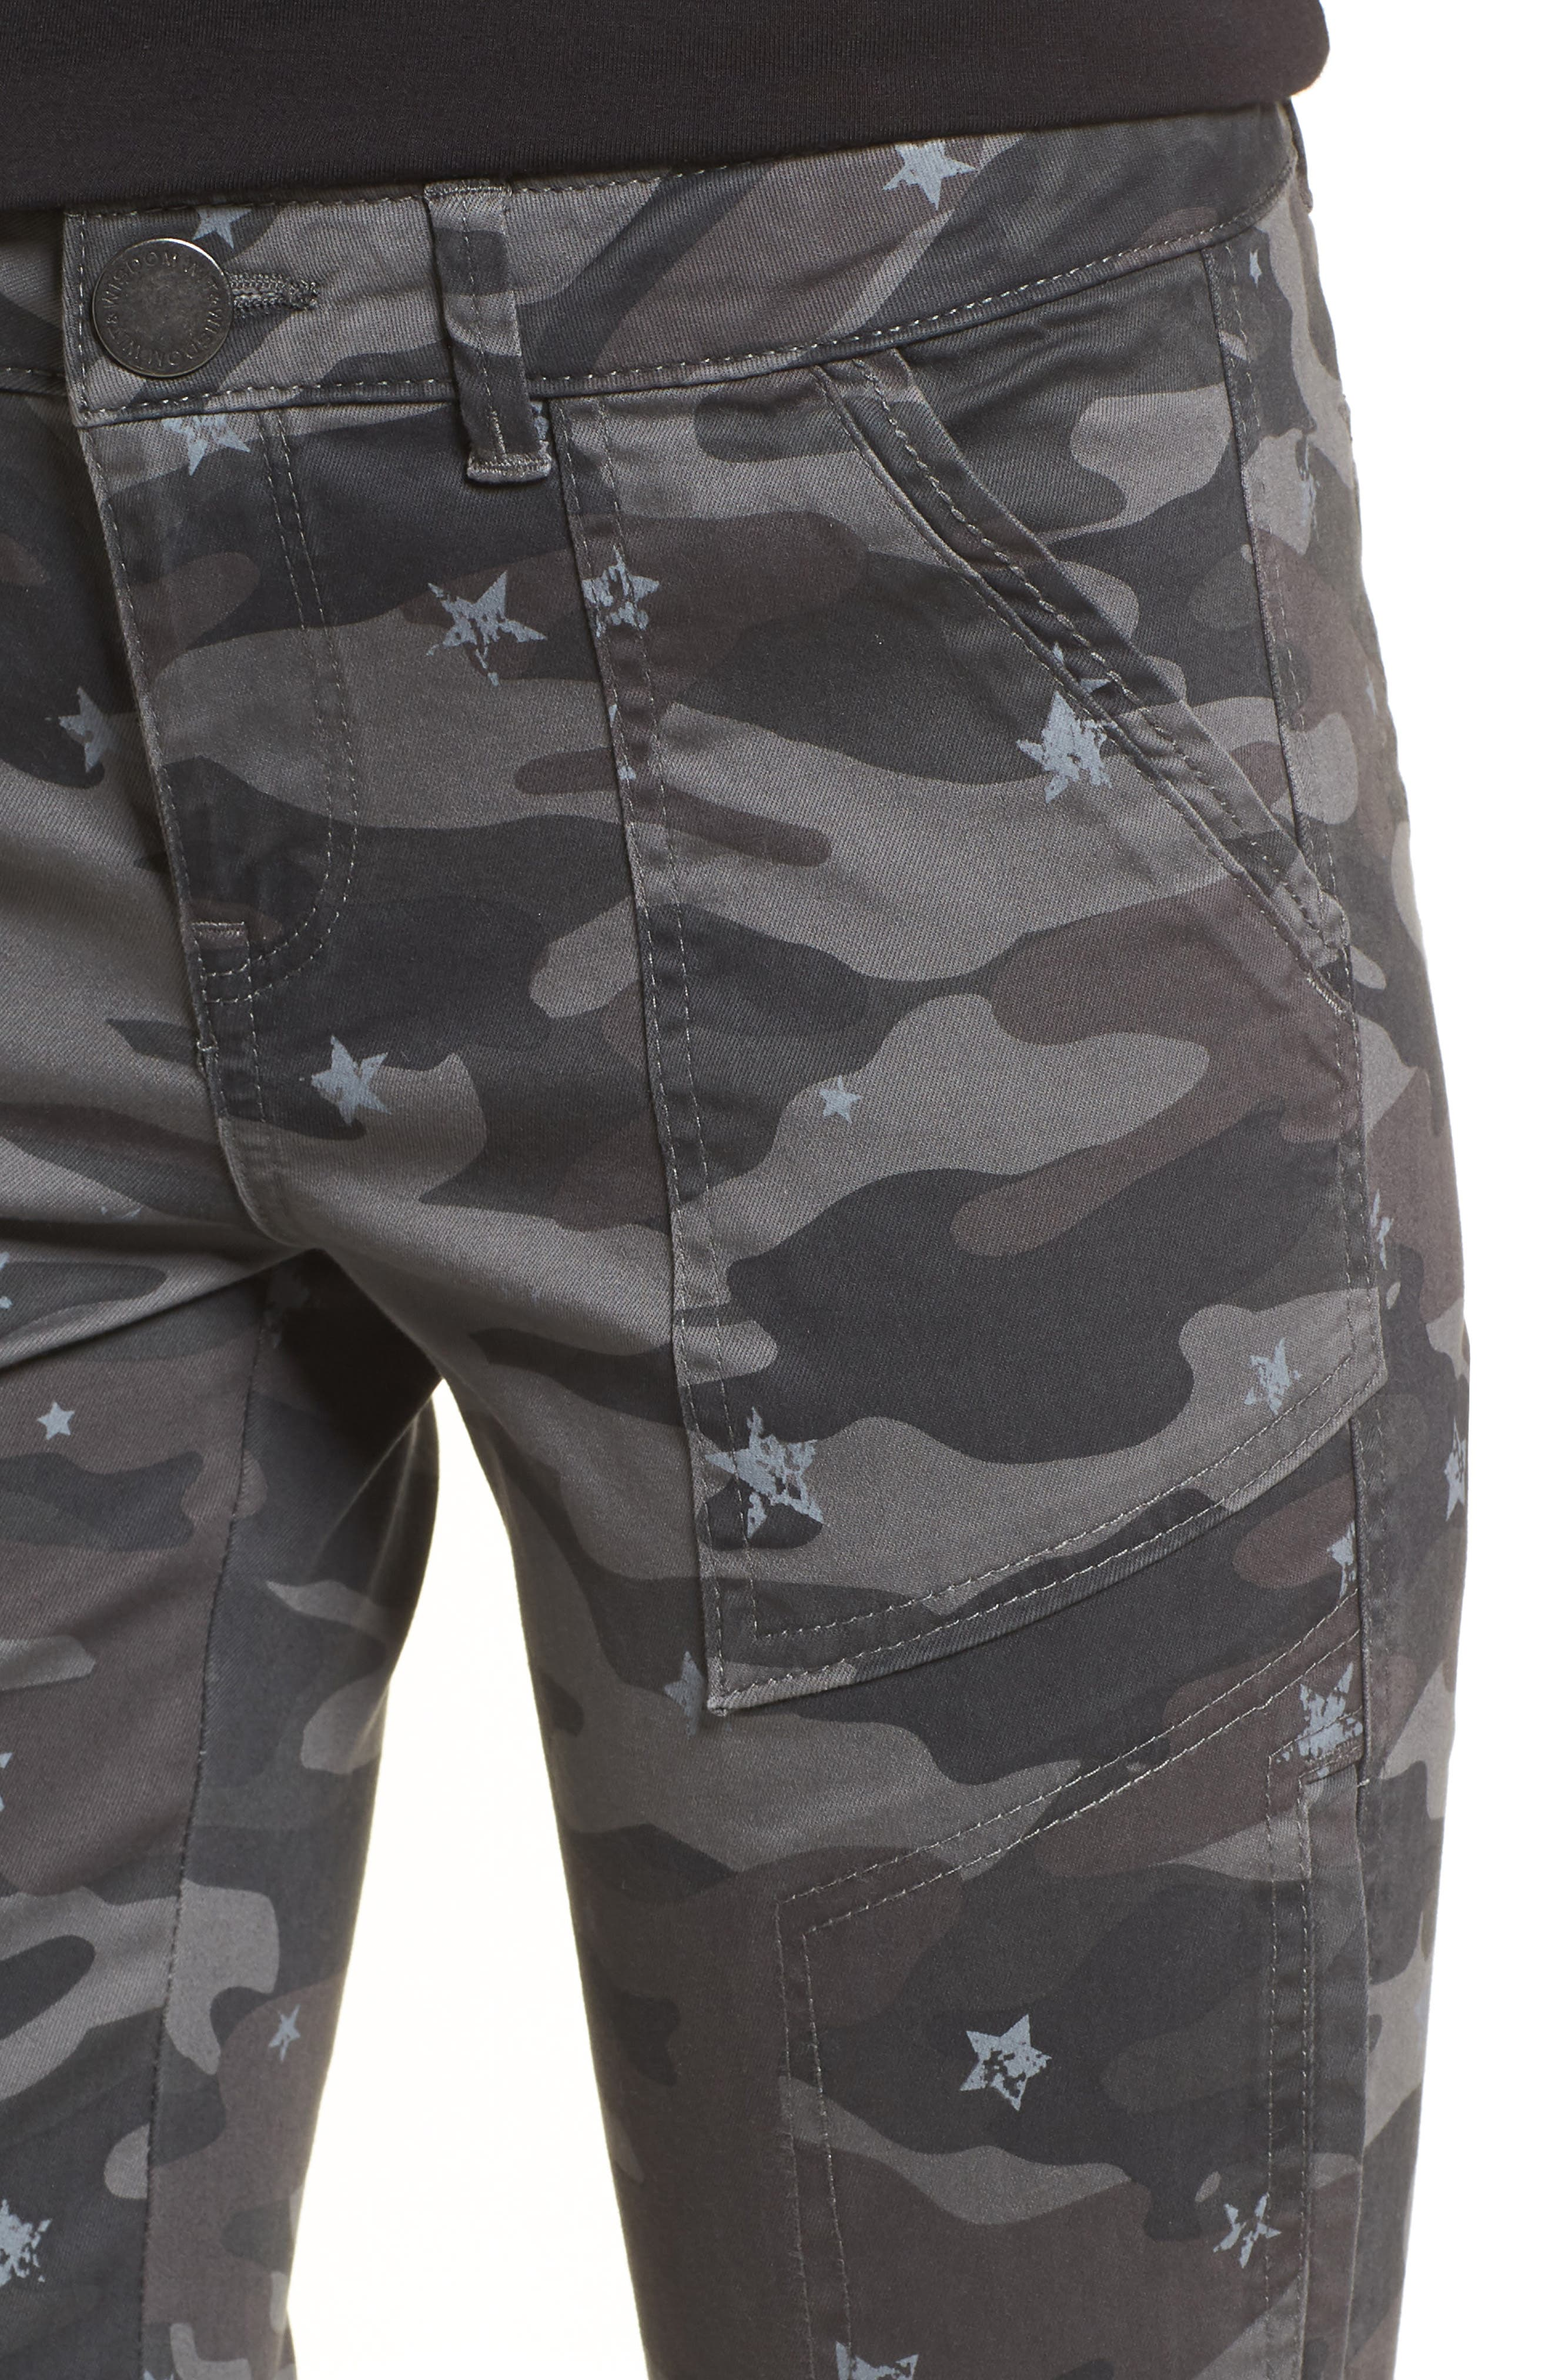 Twill Star Camo Cargo Pants,                             Alternate thumbnail 4, color,                             Cc- Charcoal